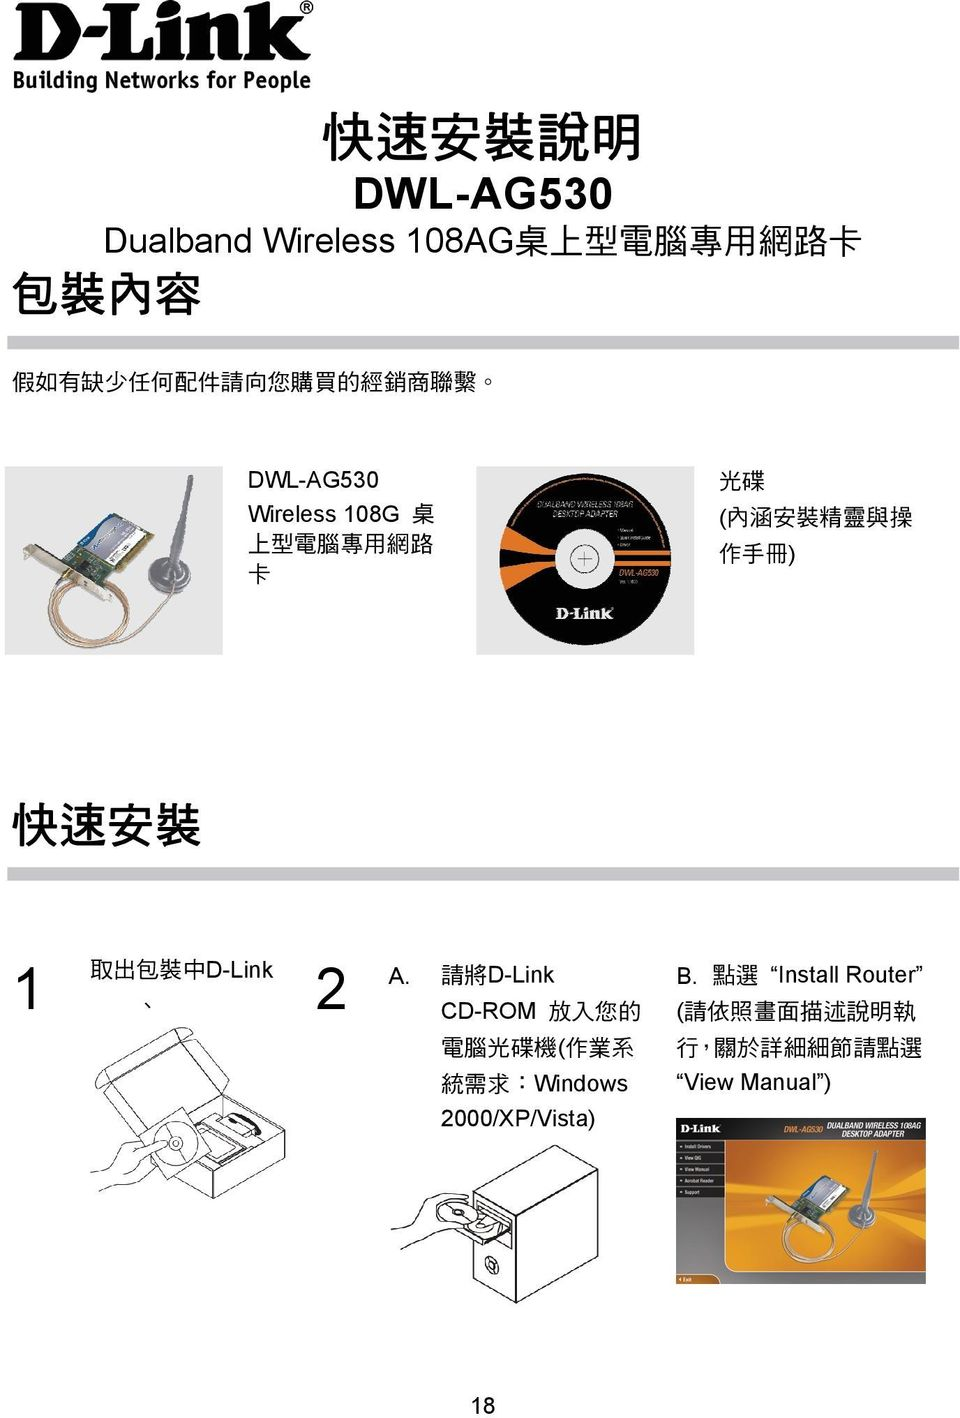 D-Link CD-ROM Install Router ( (